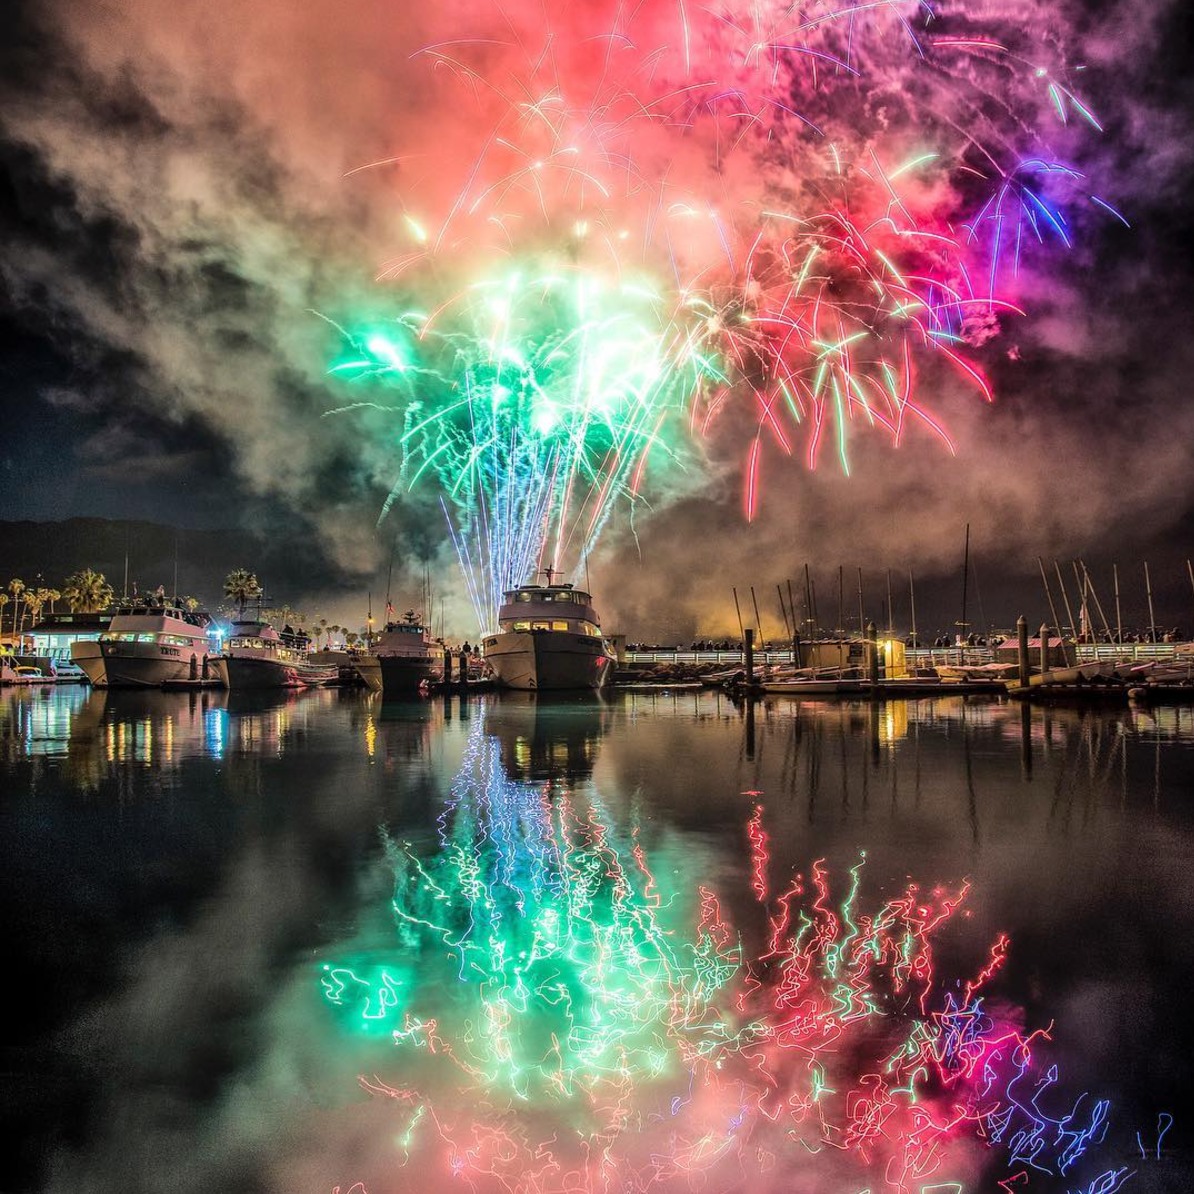 Santa Barbara Harbour displaying gorgous Fireworks Display |  Image by:  SBFourth